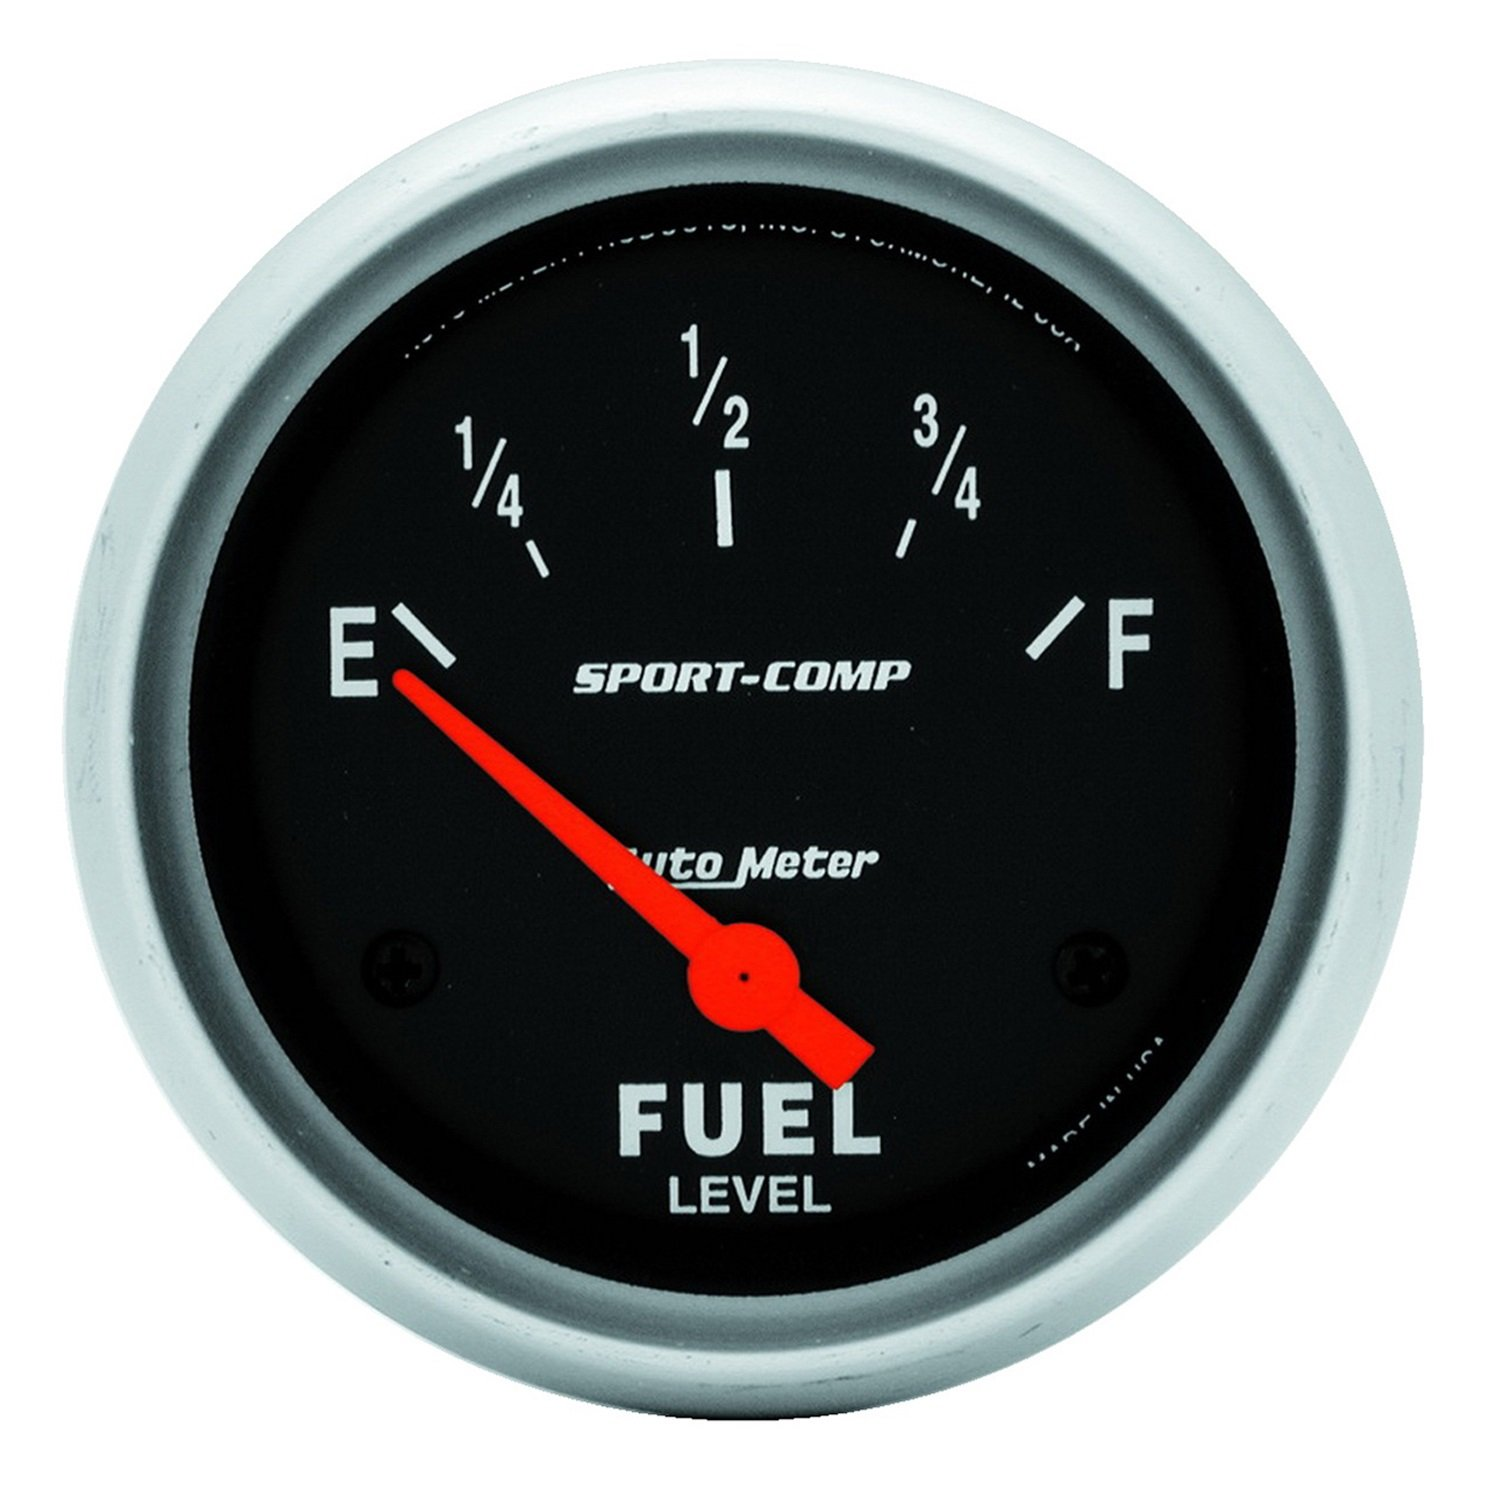 Auto Meter 3514 Sport-Comp Electric Fuel Level Gauge